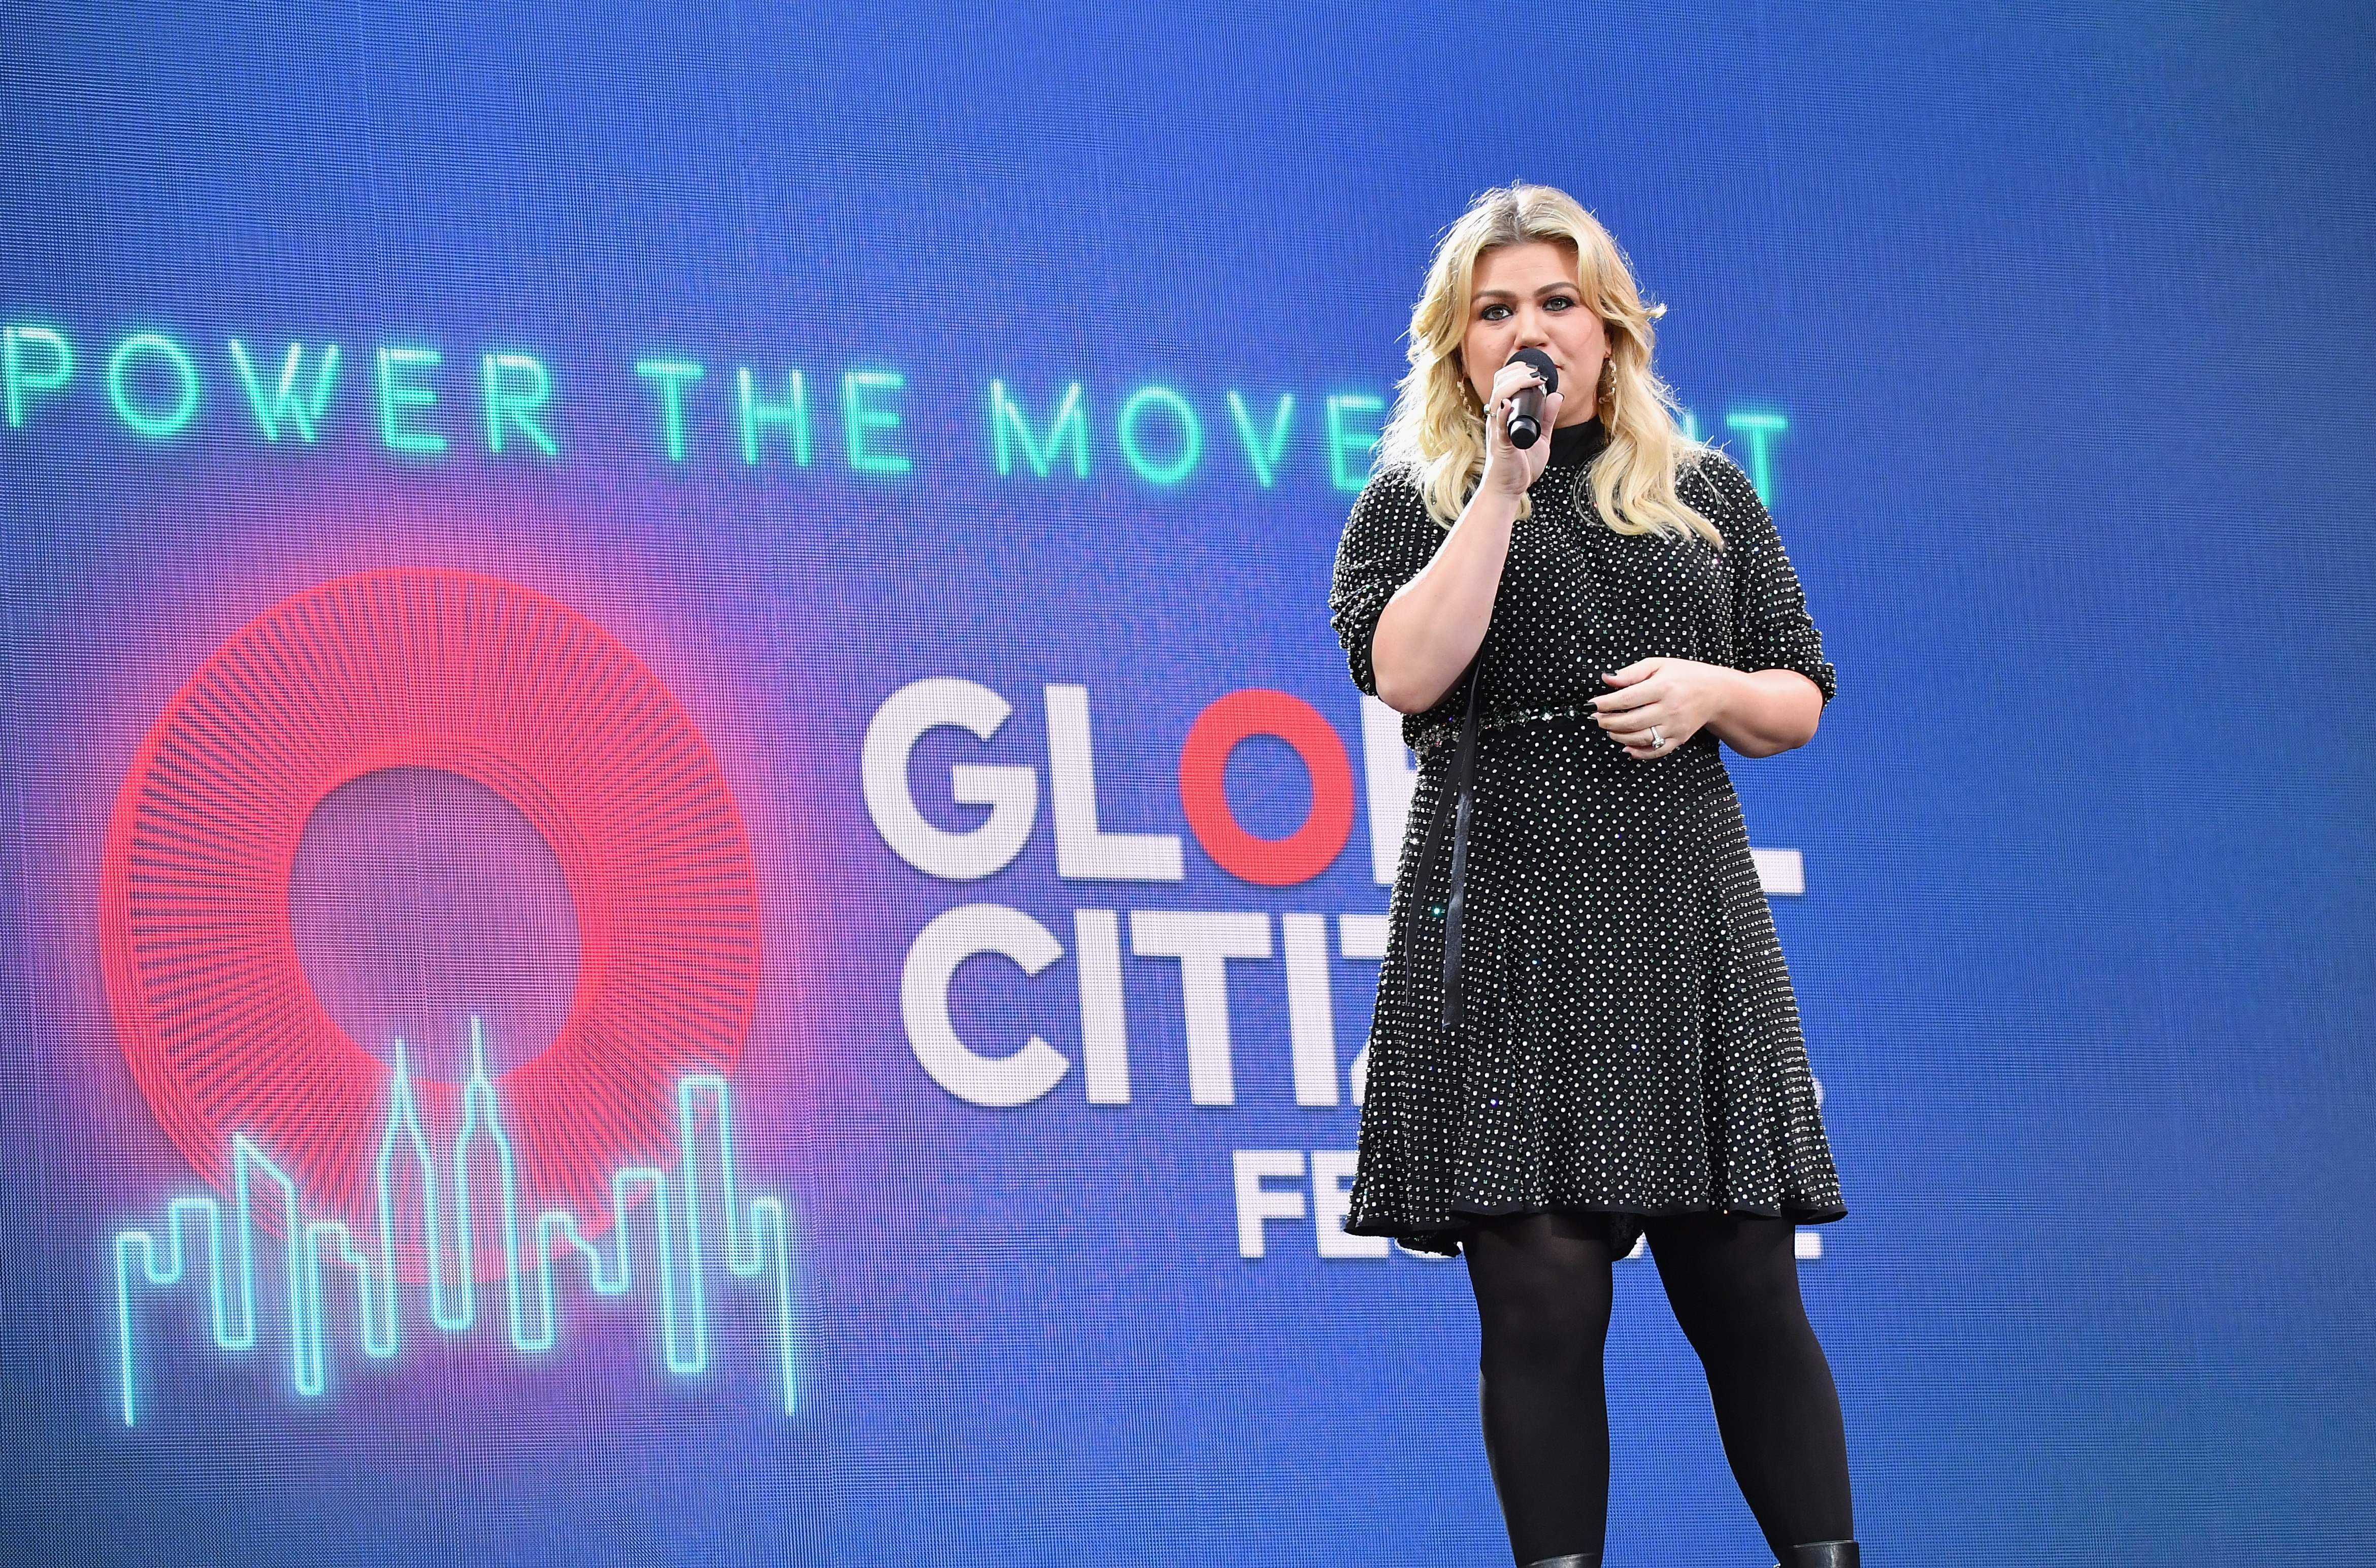 US singer and television presenter Kelly Clarkson speaks onstage at the 2019 Global Citizen Festival: Power The Movement in Central Park in New York on September 28, 2019. (Photo by Angela Weiss / AFP)        (Photo credit should read ANGELA WEISS/AFP/Getty Images)